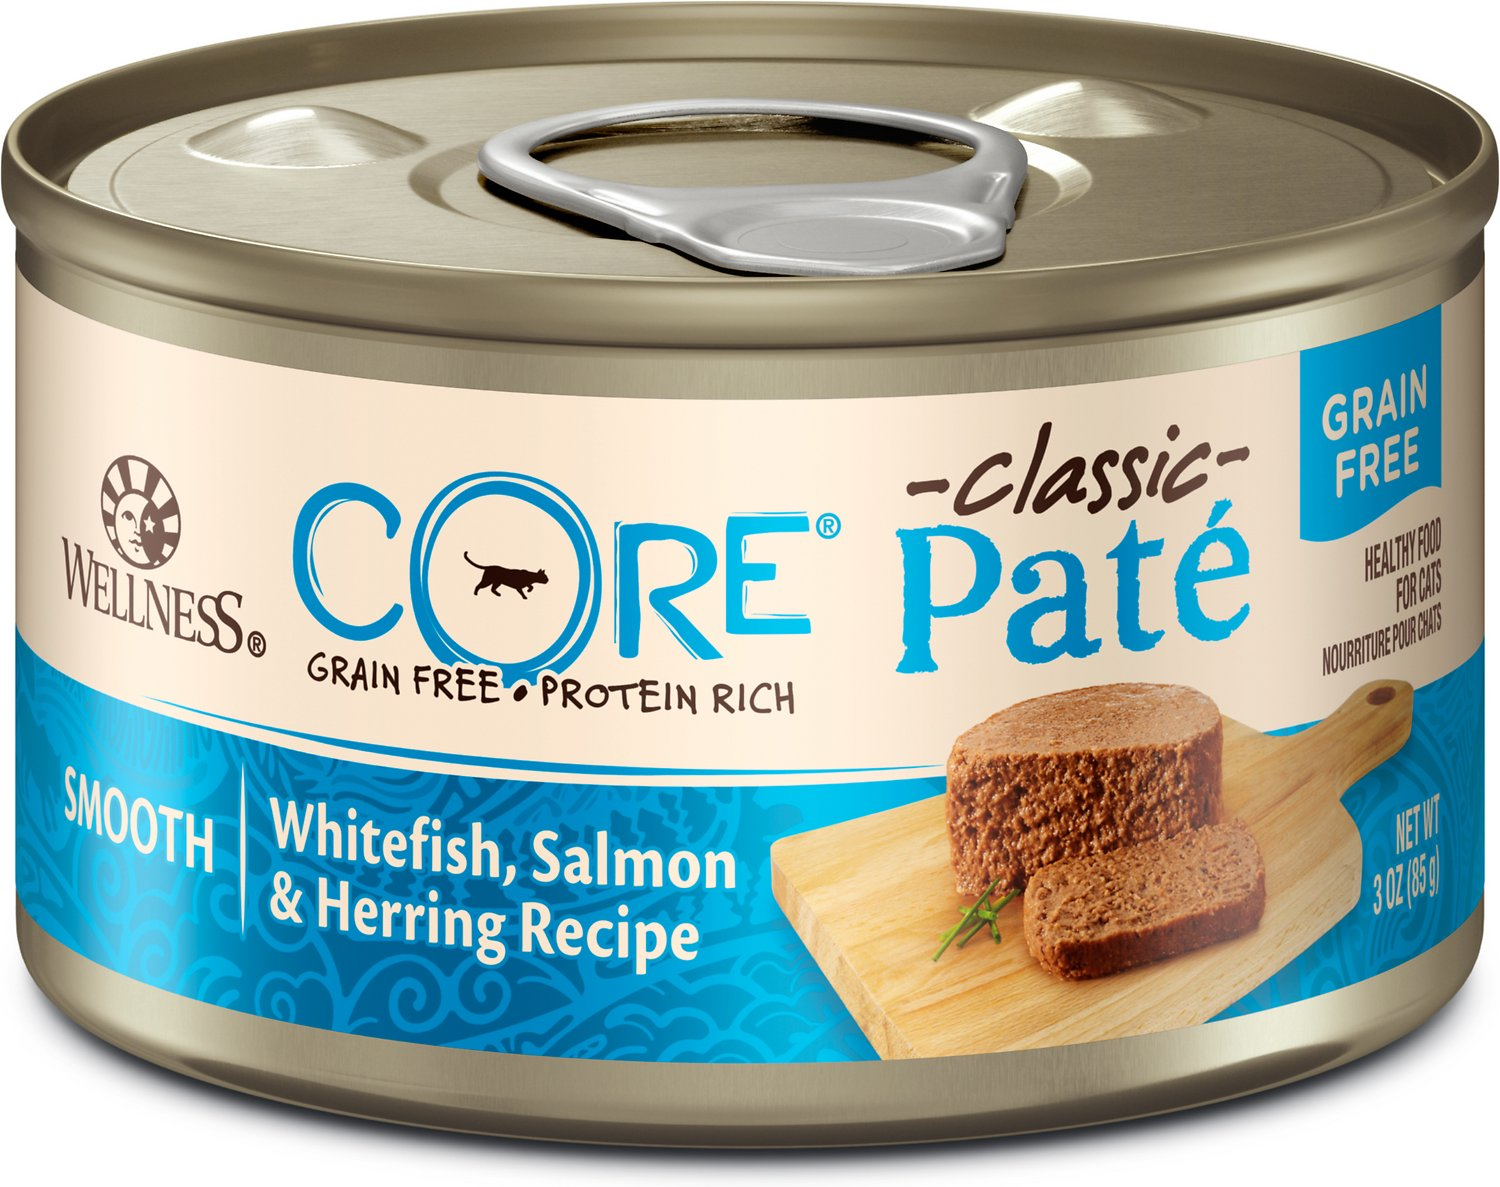 Wellness CORE Natural Grain-Free Whitefish Salmon & Herring Pate Canned Cat Food, 3-oz